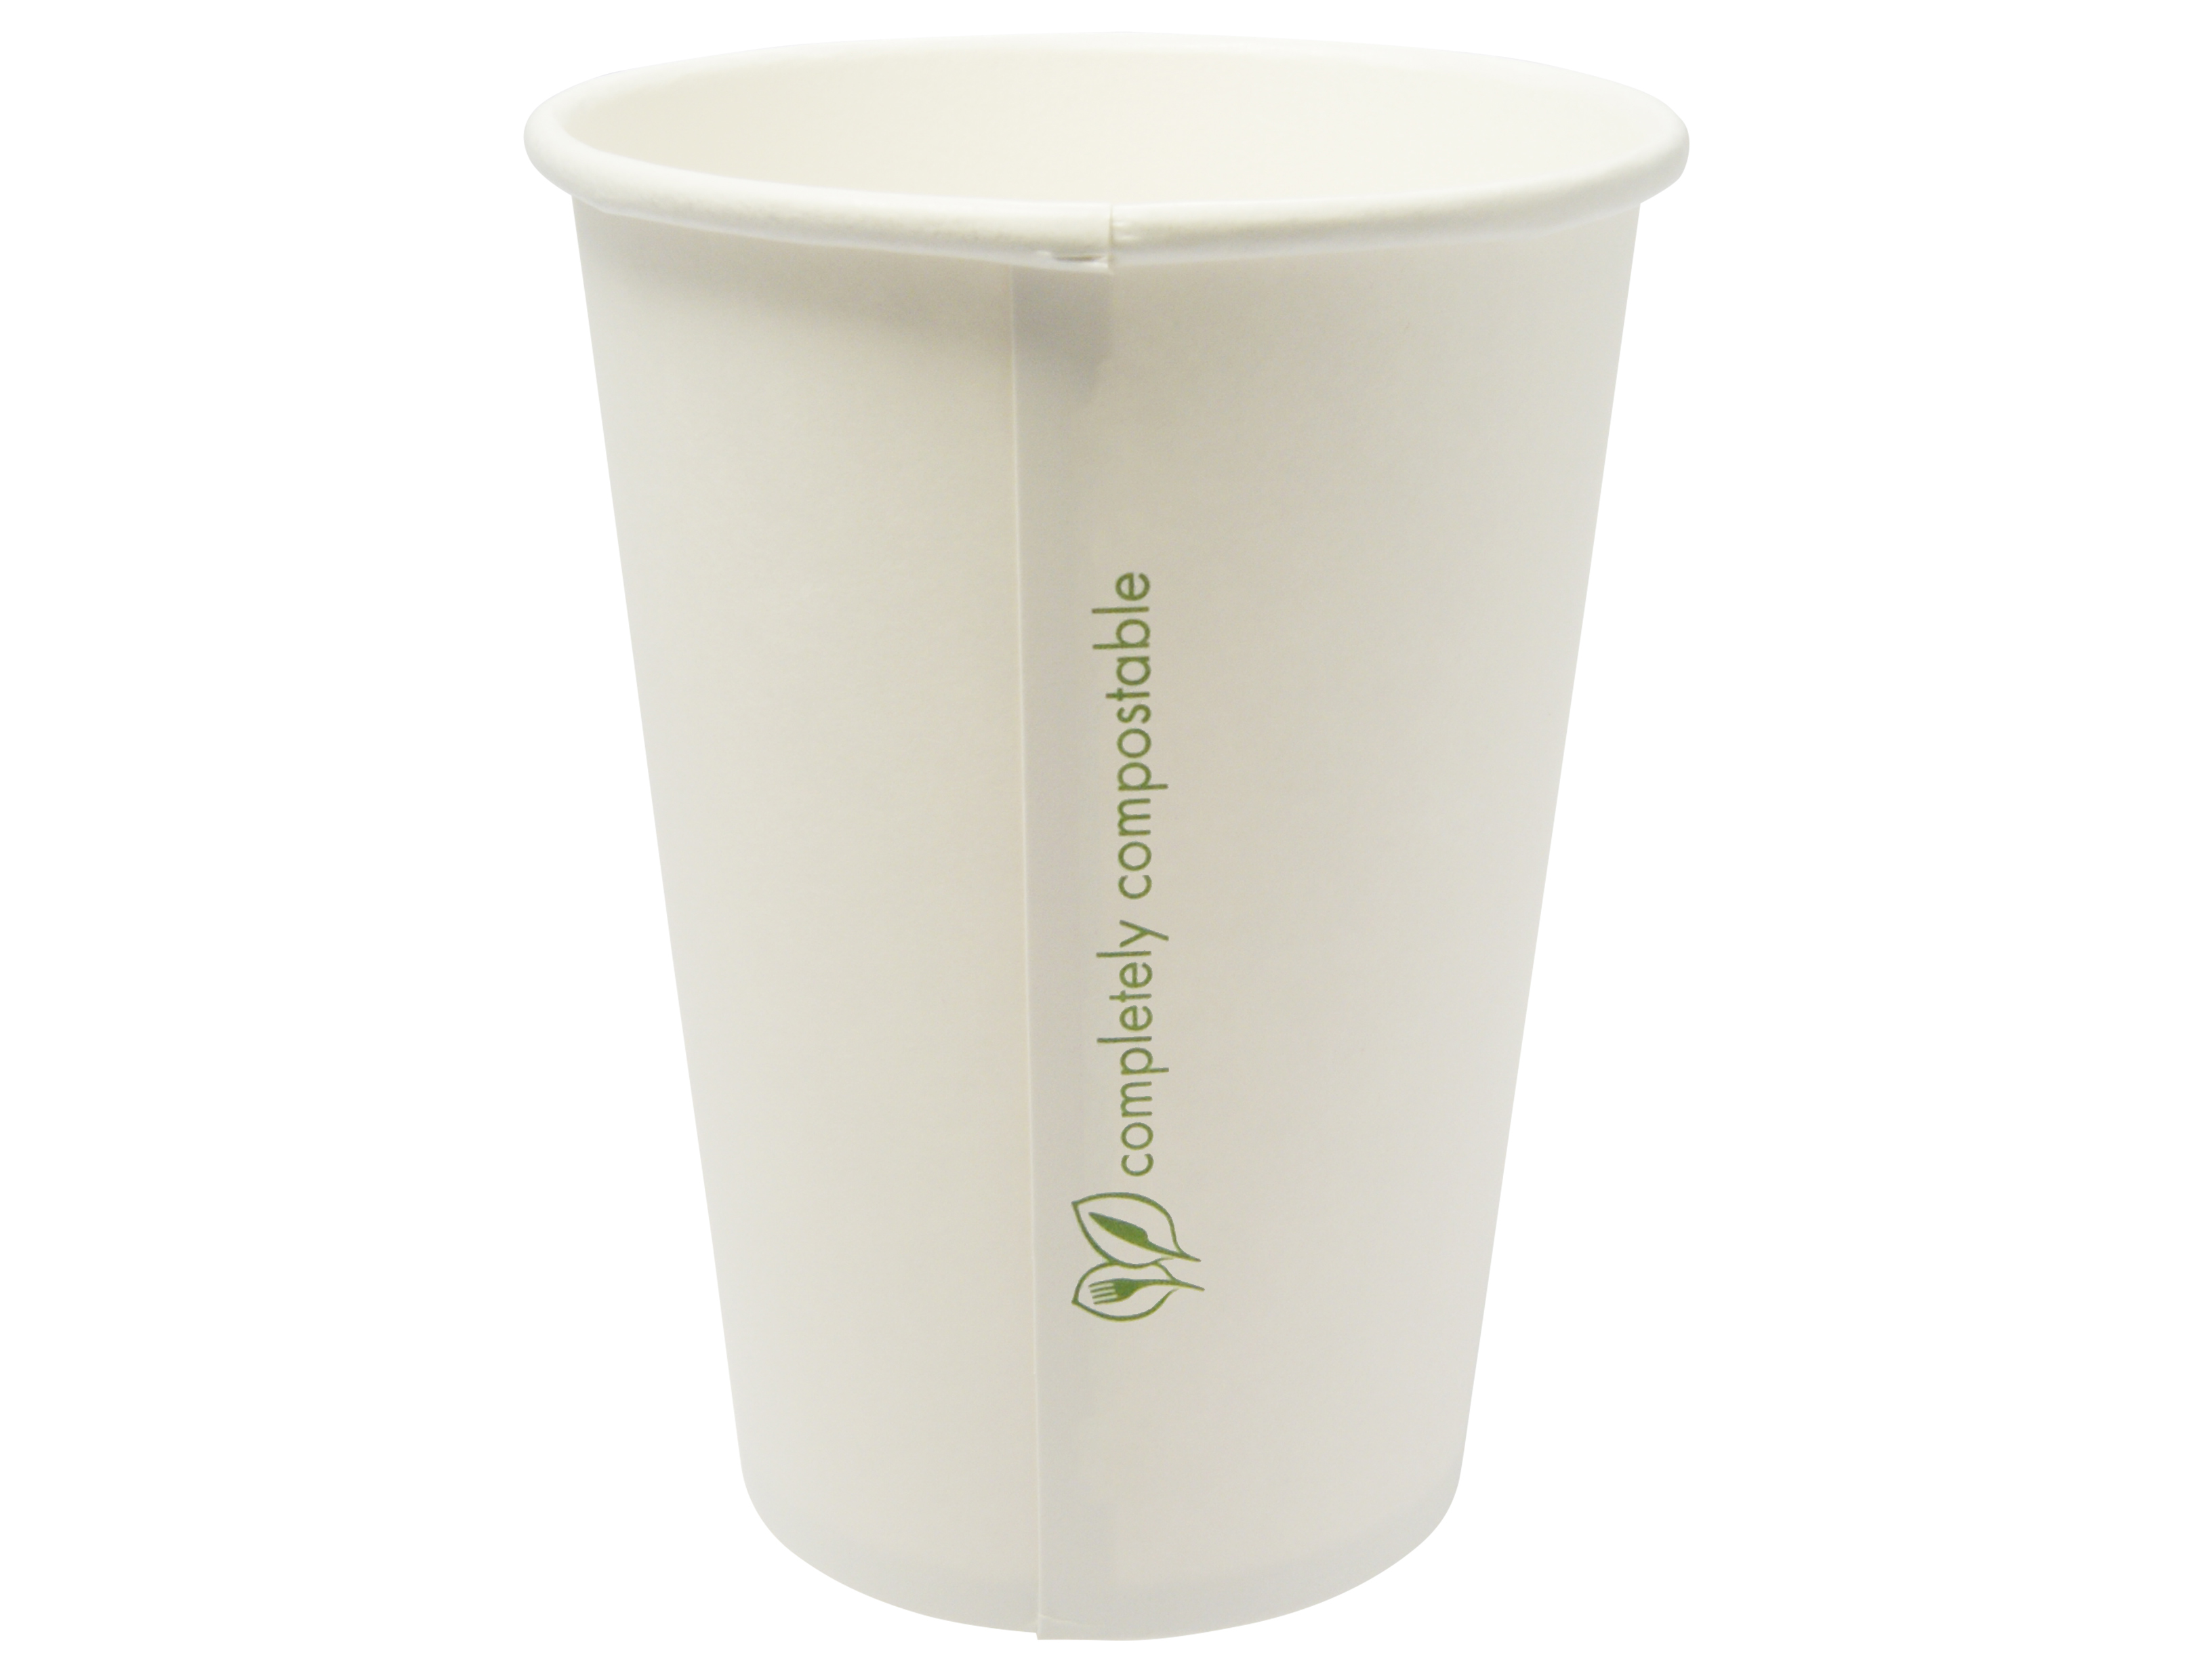 32oz (1000ml) paper bowl - white - Vegware